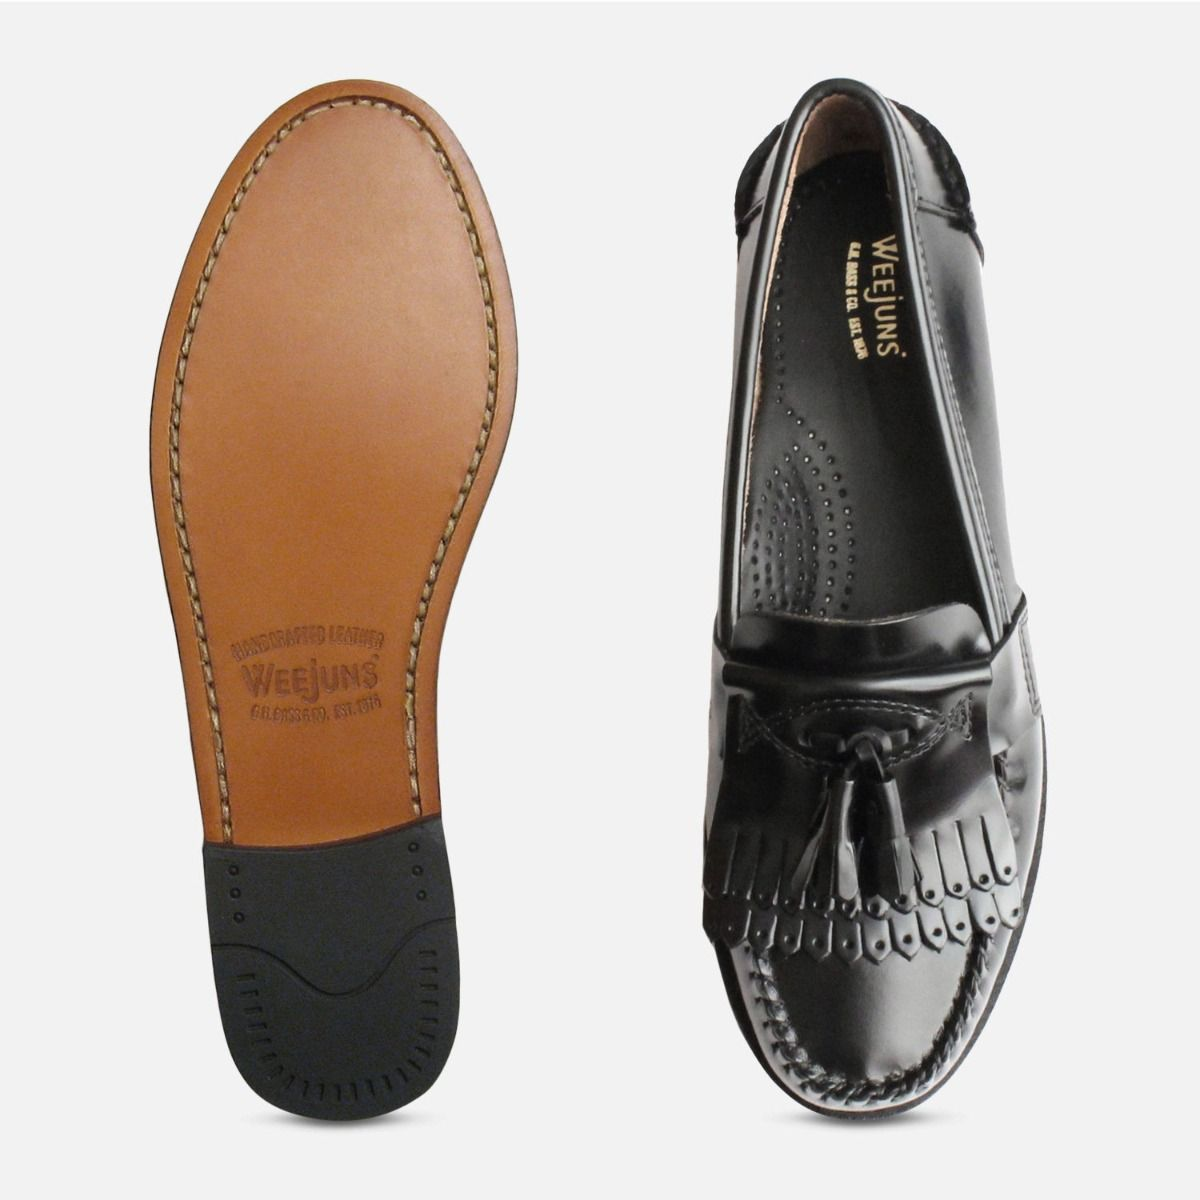 c211338a61b52 Ladies Black Double Fringe Tassel Elspeth Loafers